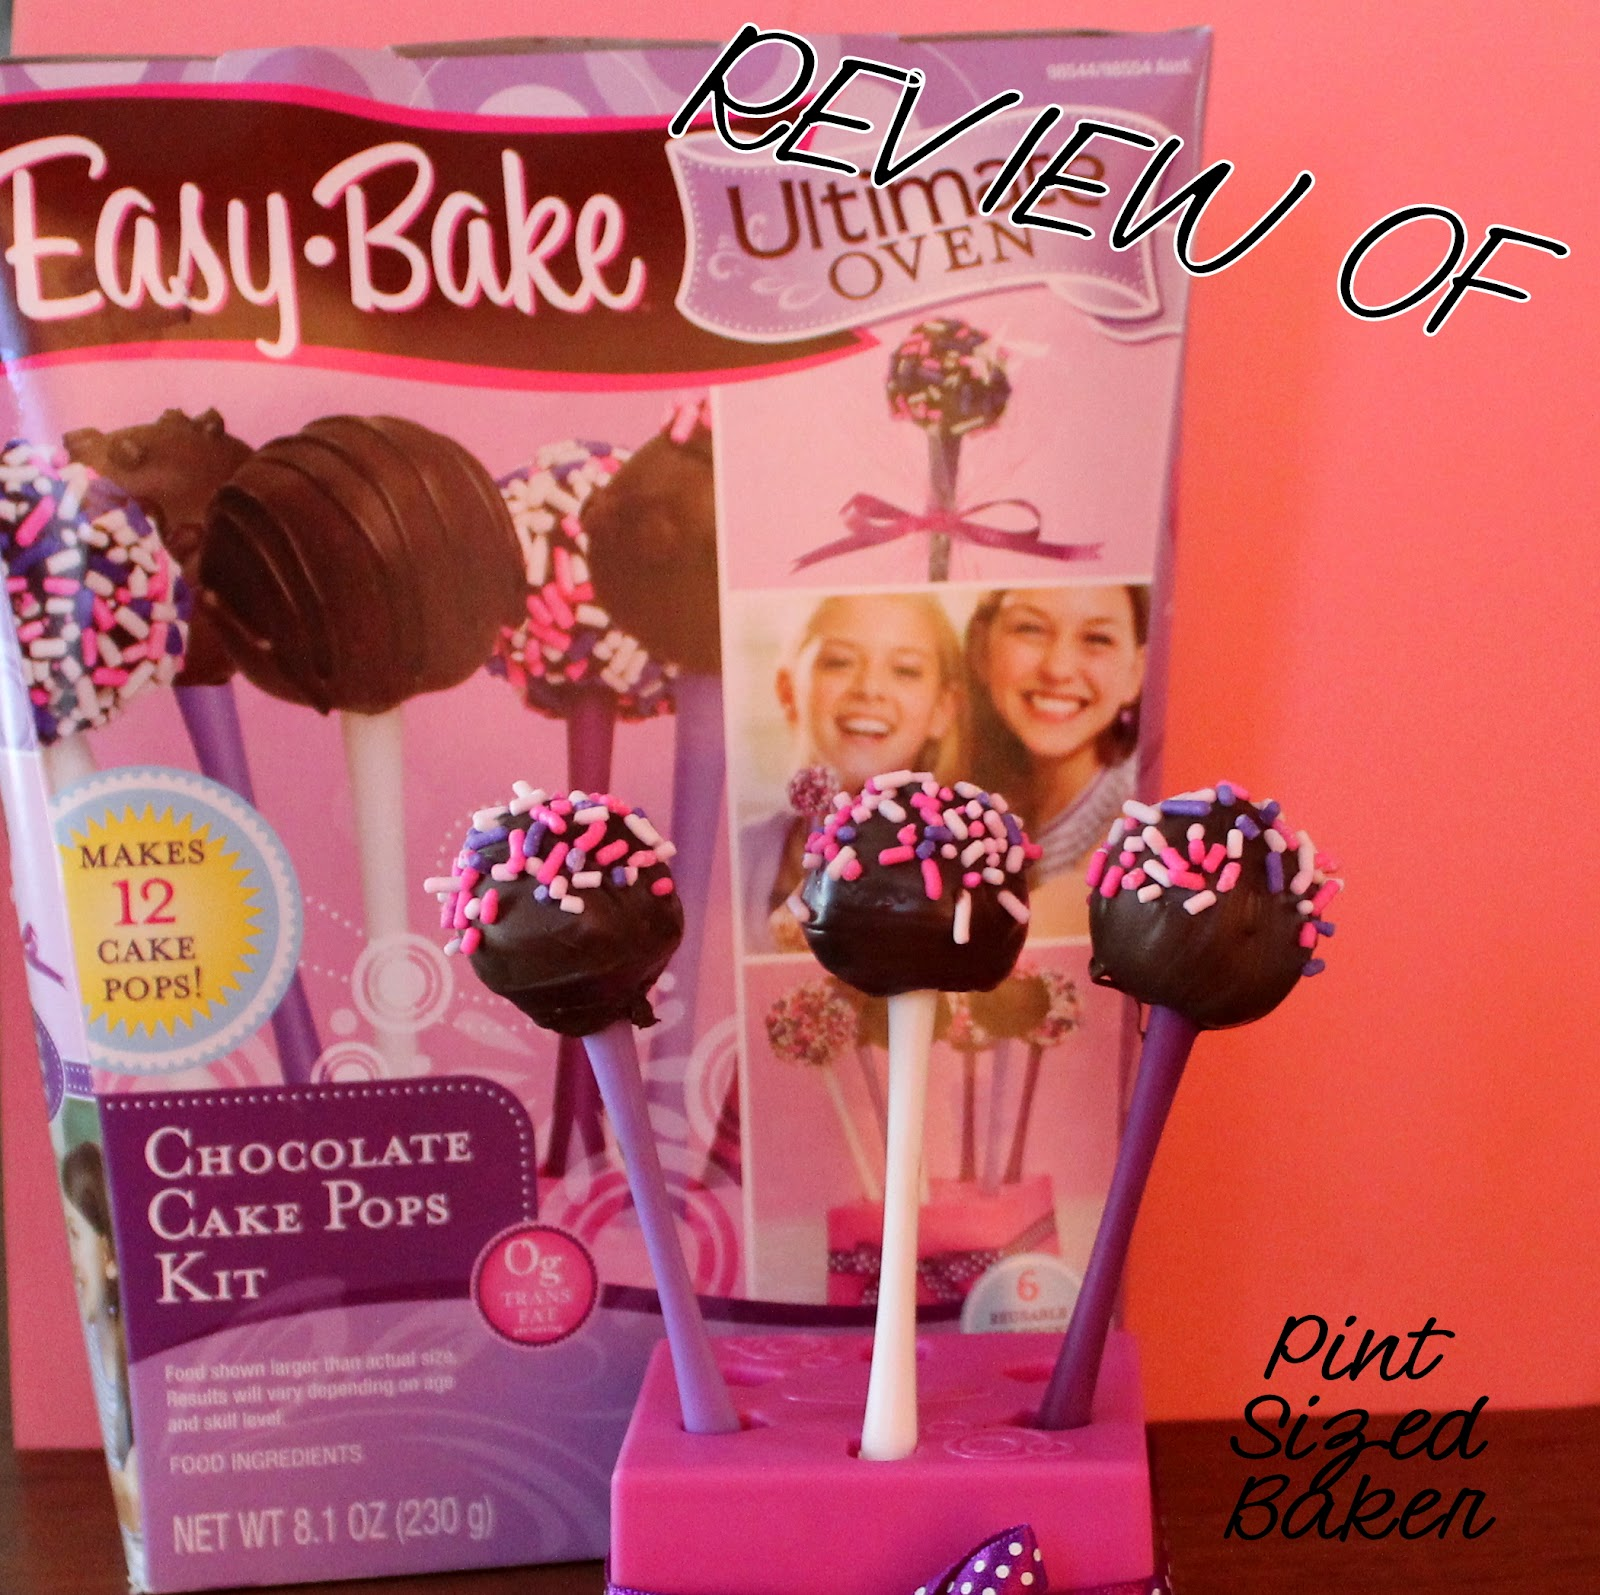 Review of easy bake oven cake pop kit pint sized baker review of easy bake oven cake pop kit forumfinder Gallery